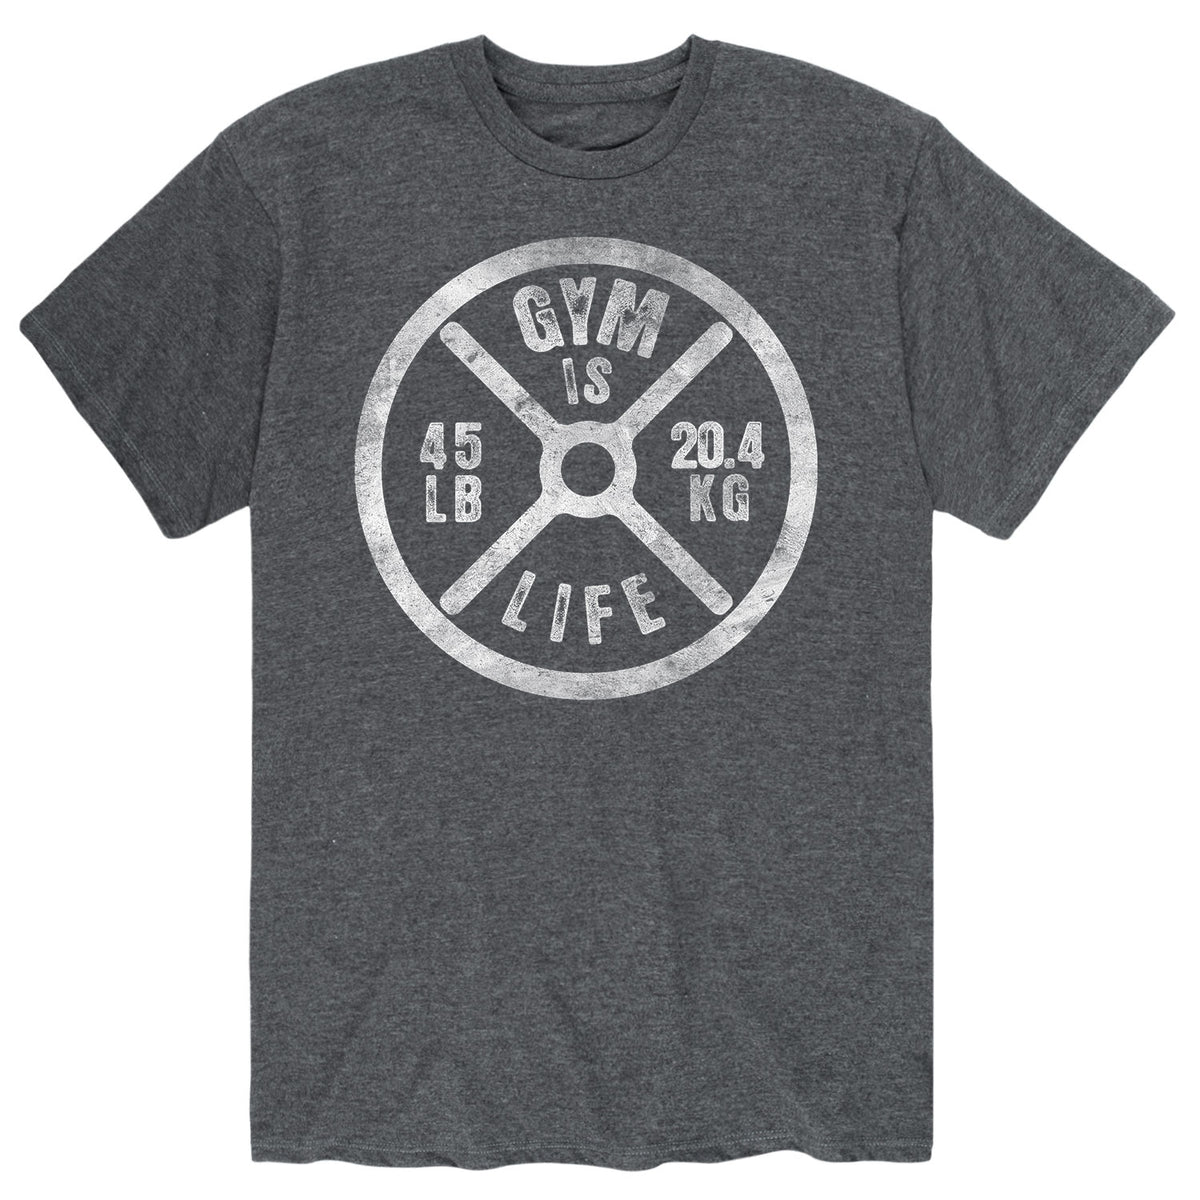 Gym Is Life, Weight Plate - Men's Short Sleeve T-Shirt